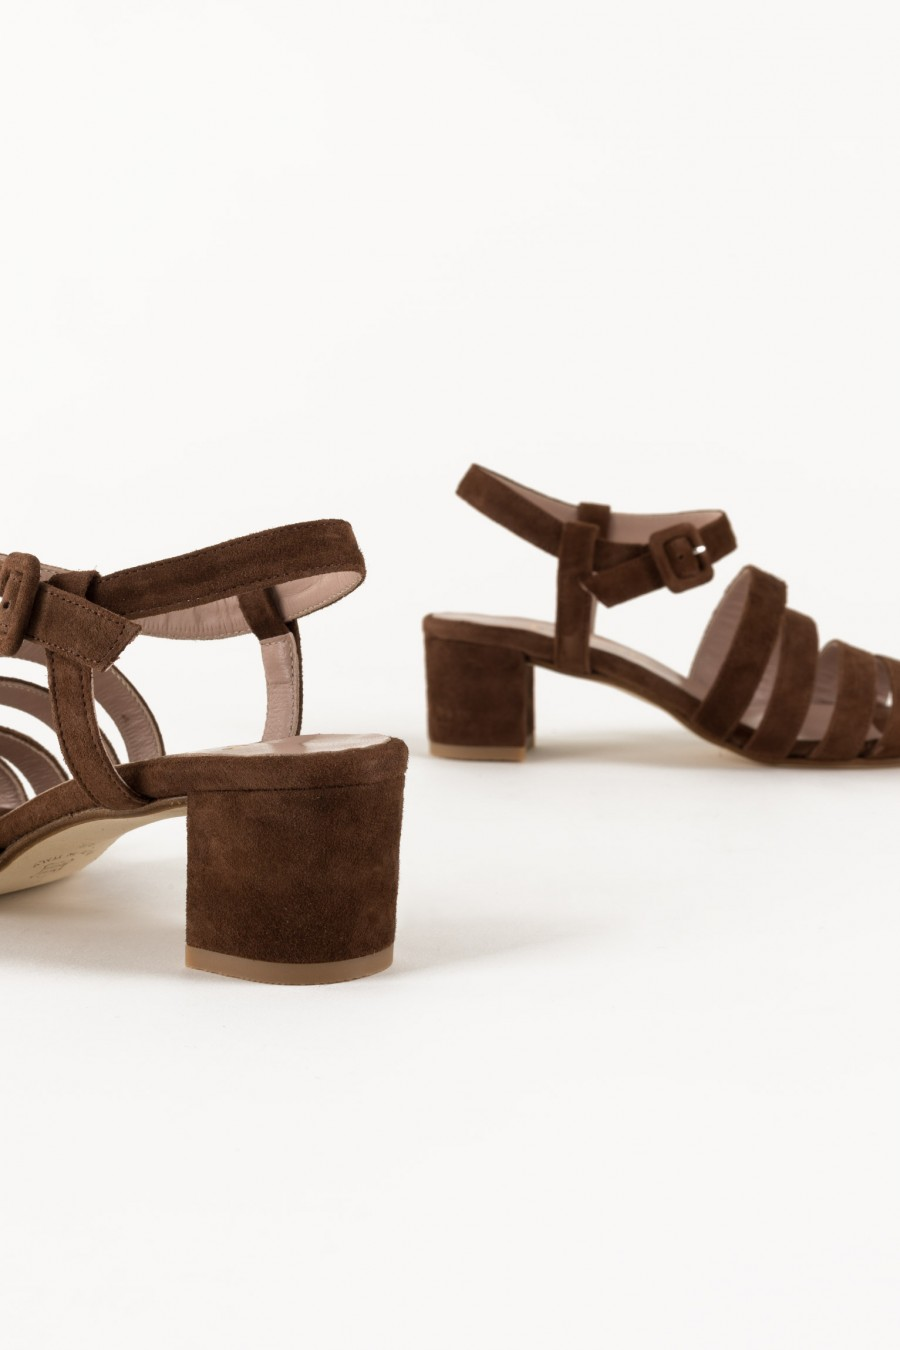 Brown sandals with large heel